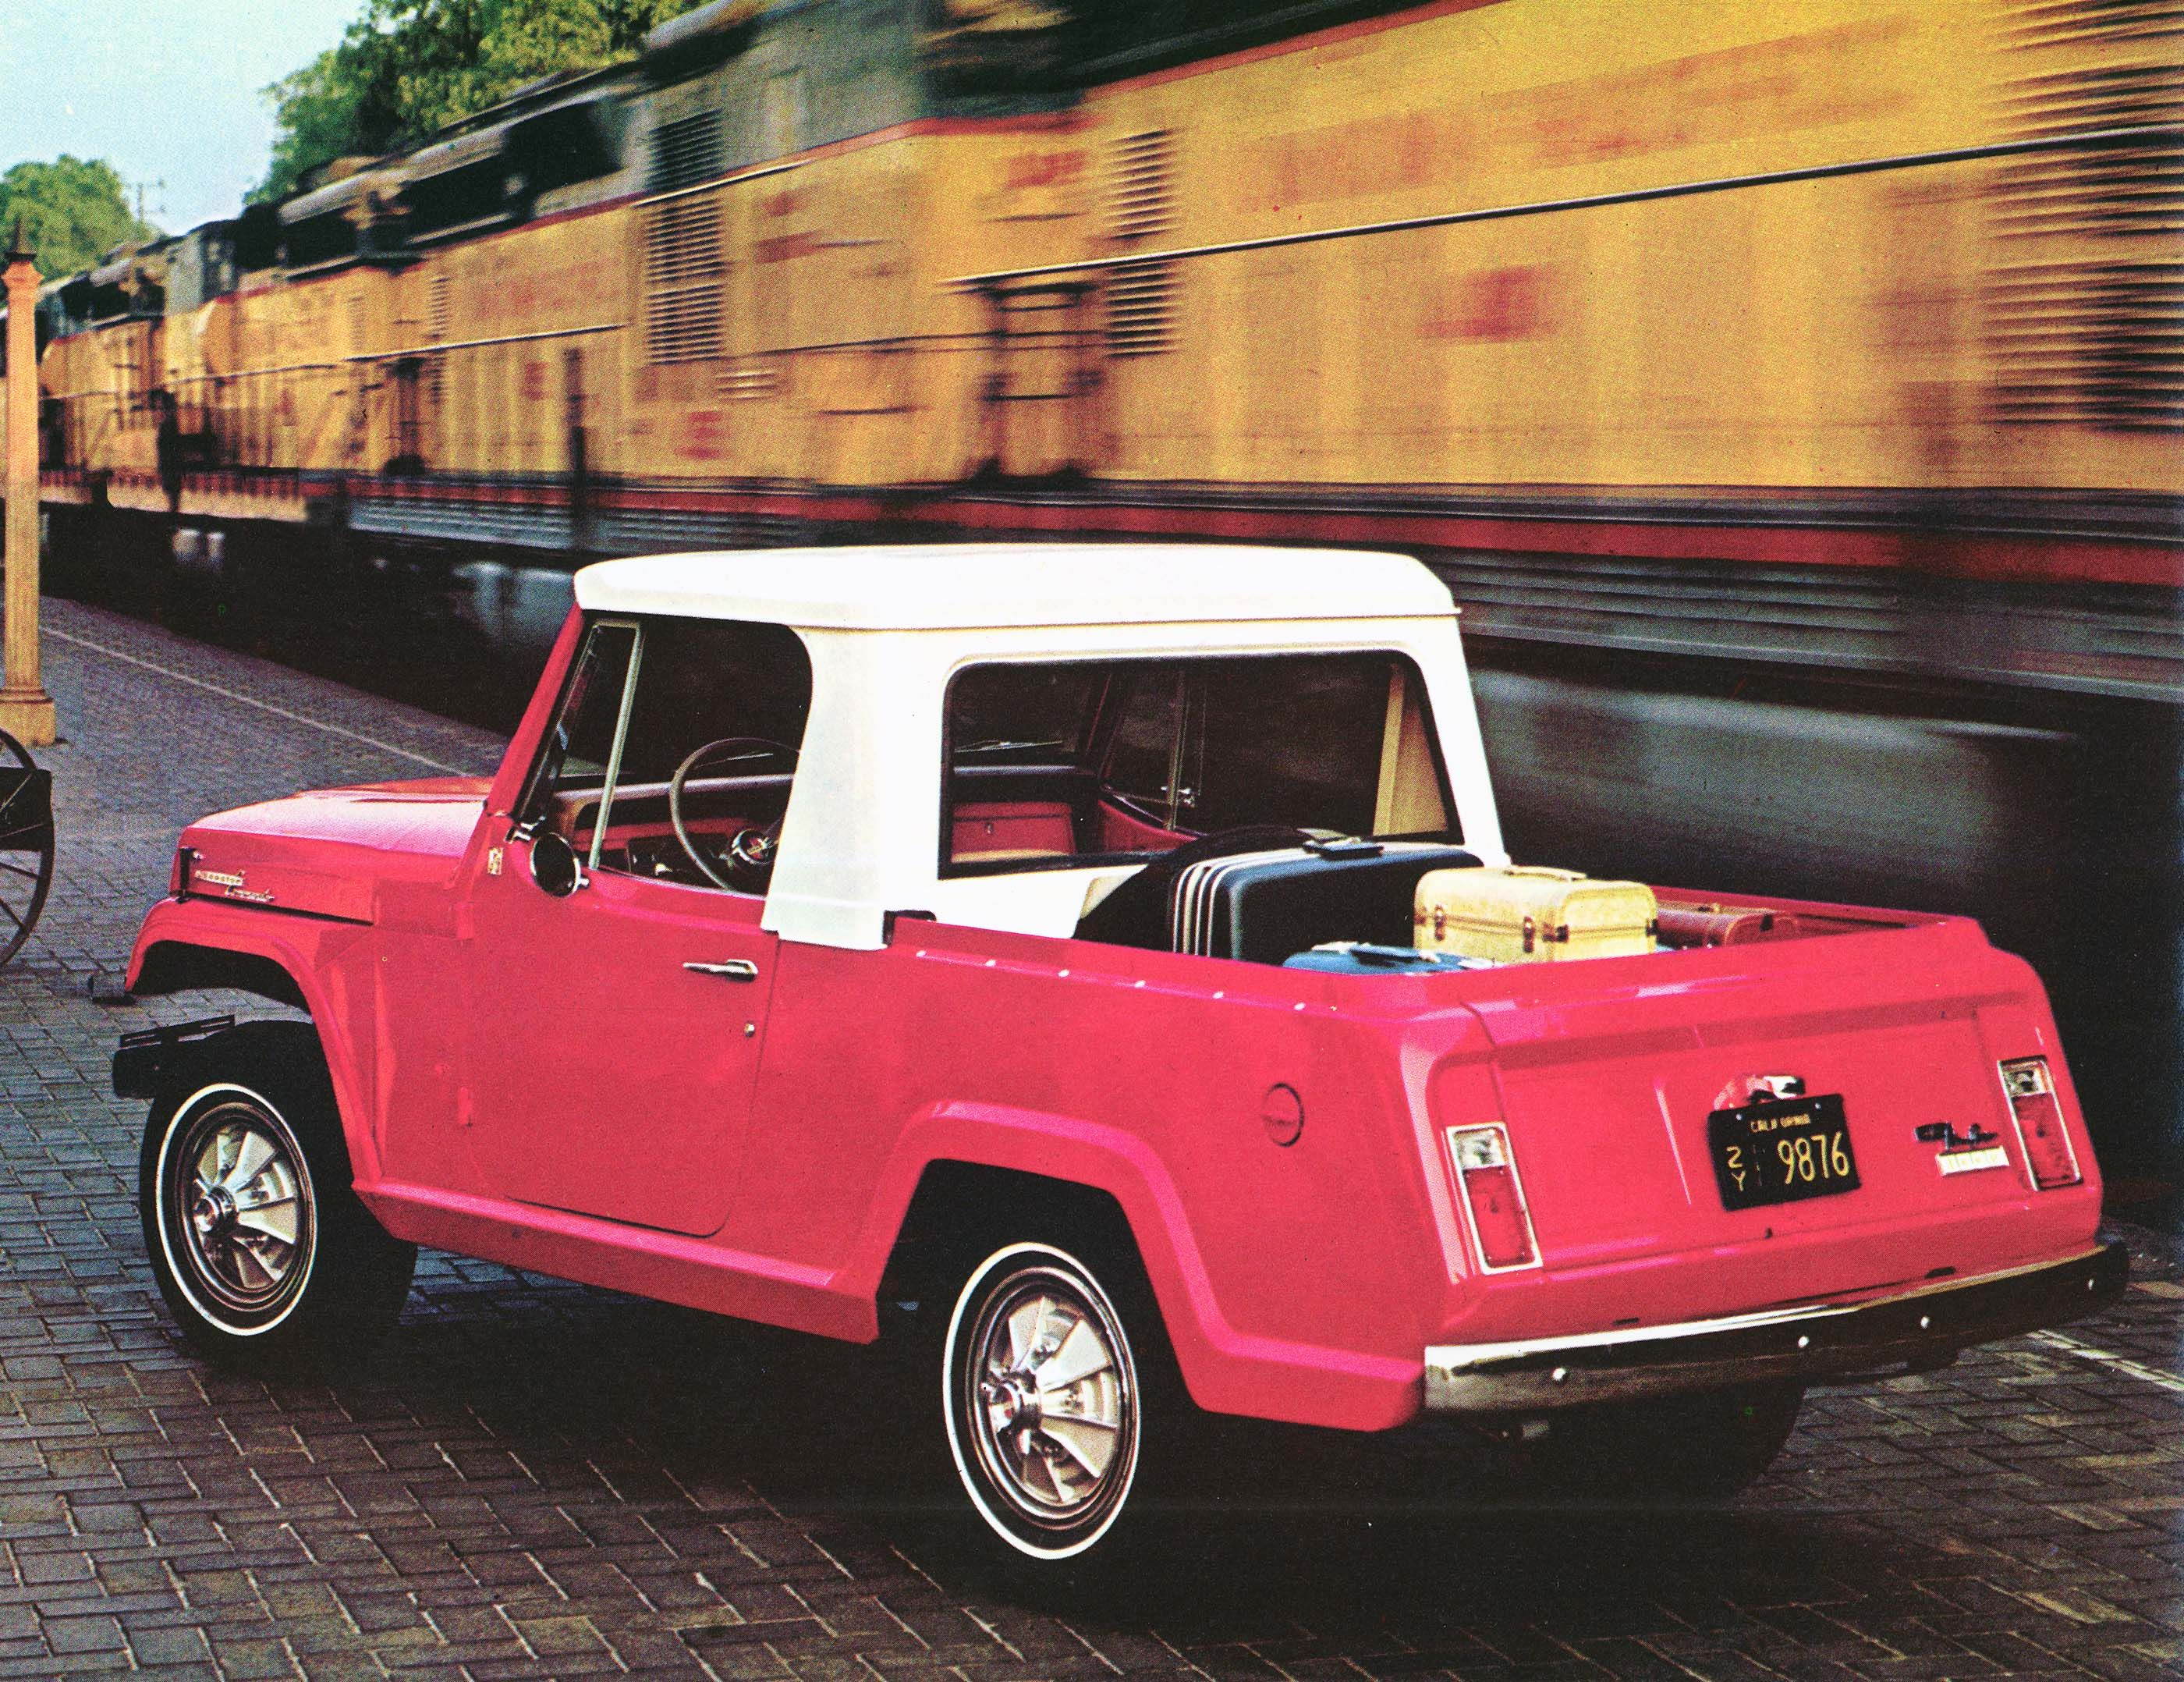 1967 jeep jeepster commando pick up so cute looks like it has mustang hub caps